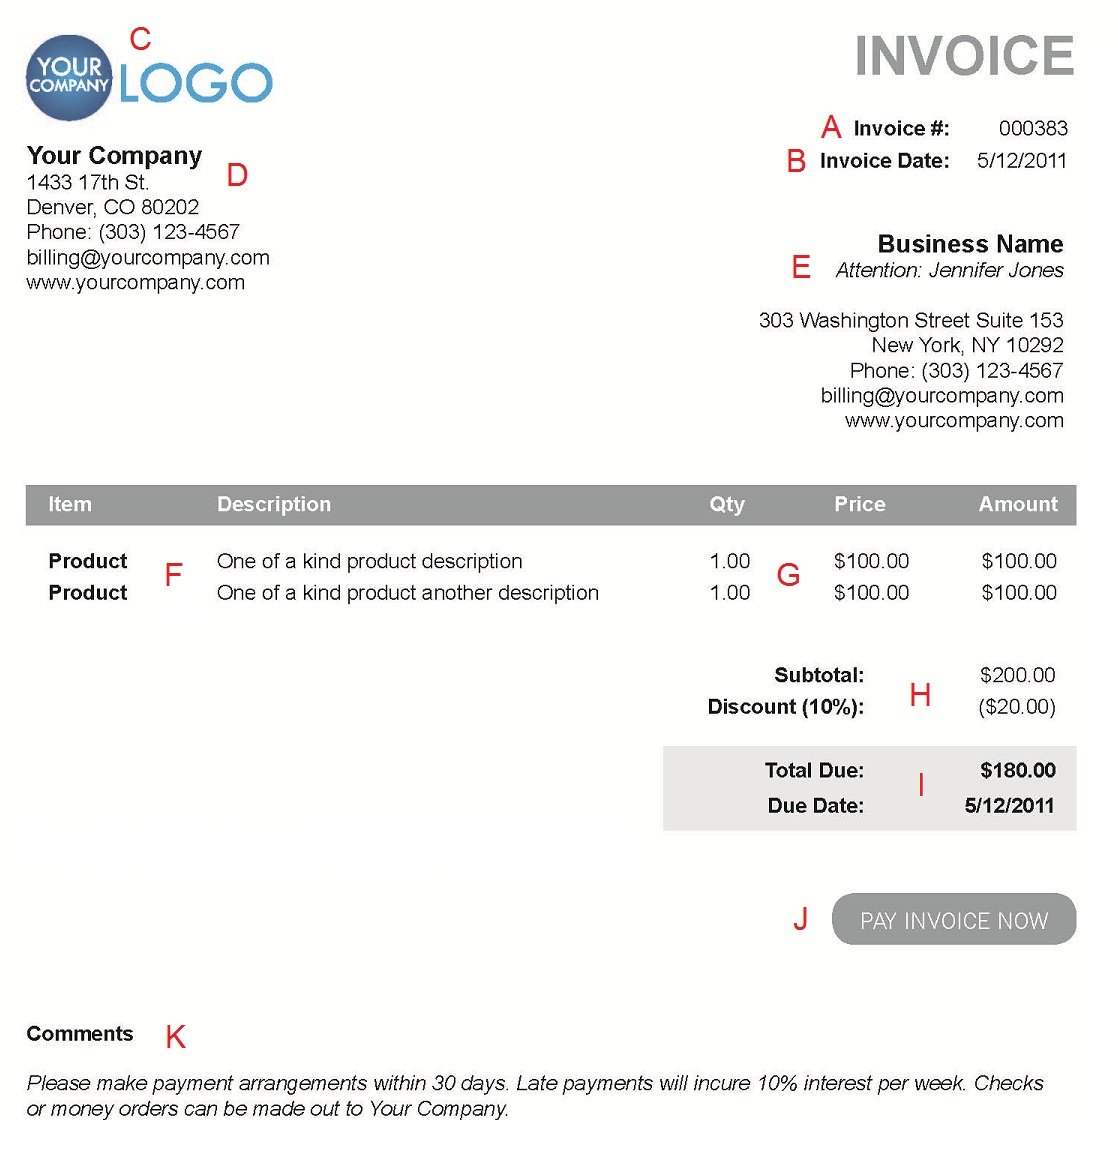 Pigbrotherus  Nice The  Different Sections Of An Electronic Payment Invoice With Remarkable A  With Charming Invoice Free Download Also Dealer Invoice Cost In Addition Repair Invoice Template And How To Find Car Invoice Price As Well As Deluxe Invoices Additionally Pre Invoice From Paysimplecom With Pigbrotherus  Remarkable The  Different Sections Of An Electronic Payment Invoice With Charming A  And Nice Invoice Free Download Also Dealer Invoice Cost In Addition Repair Invoice Template From Paysimplecom